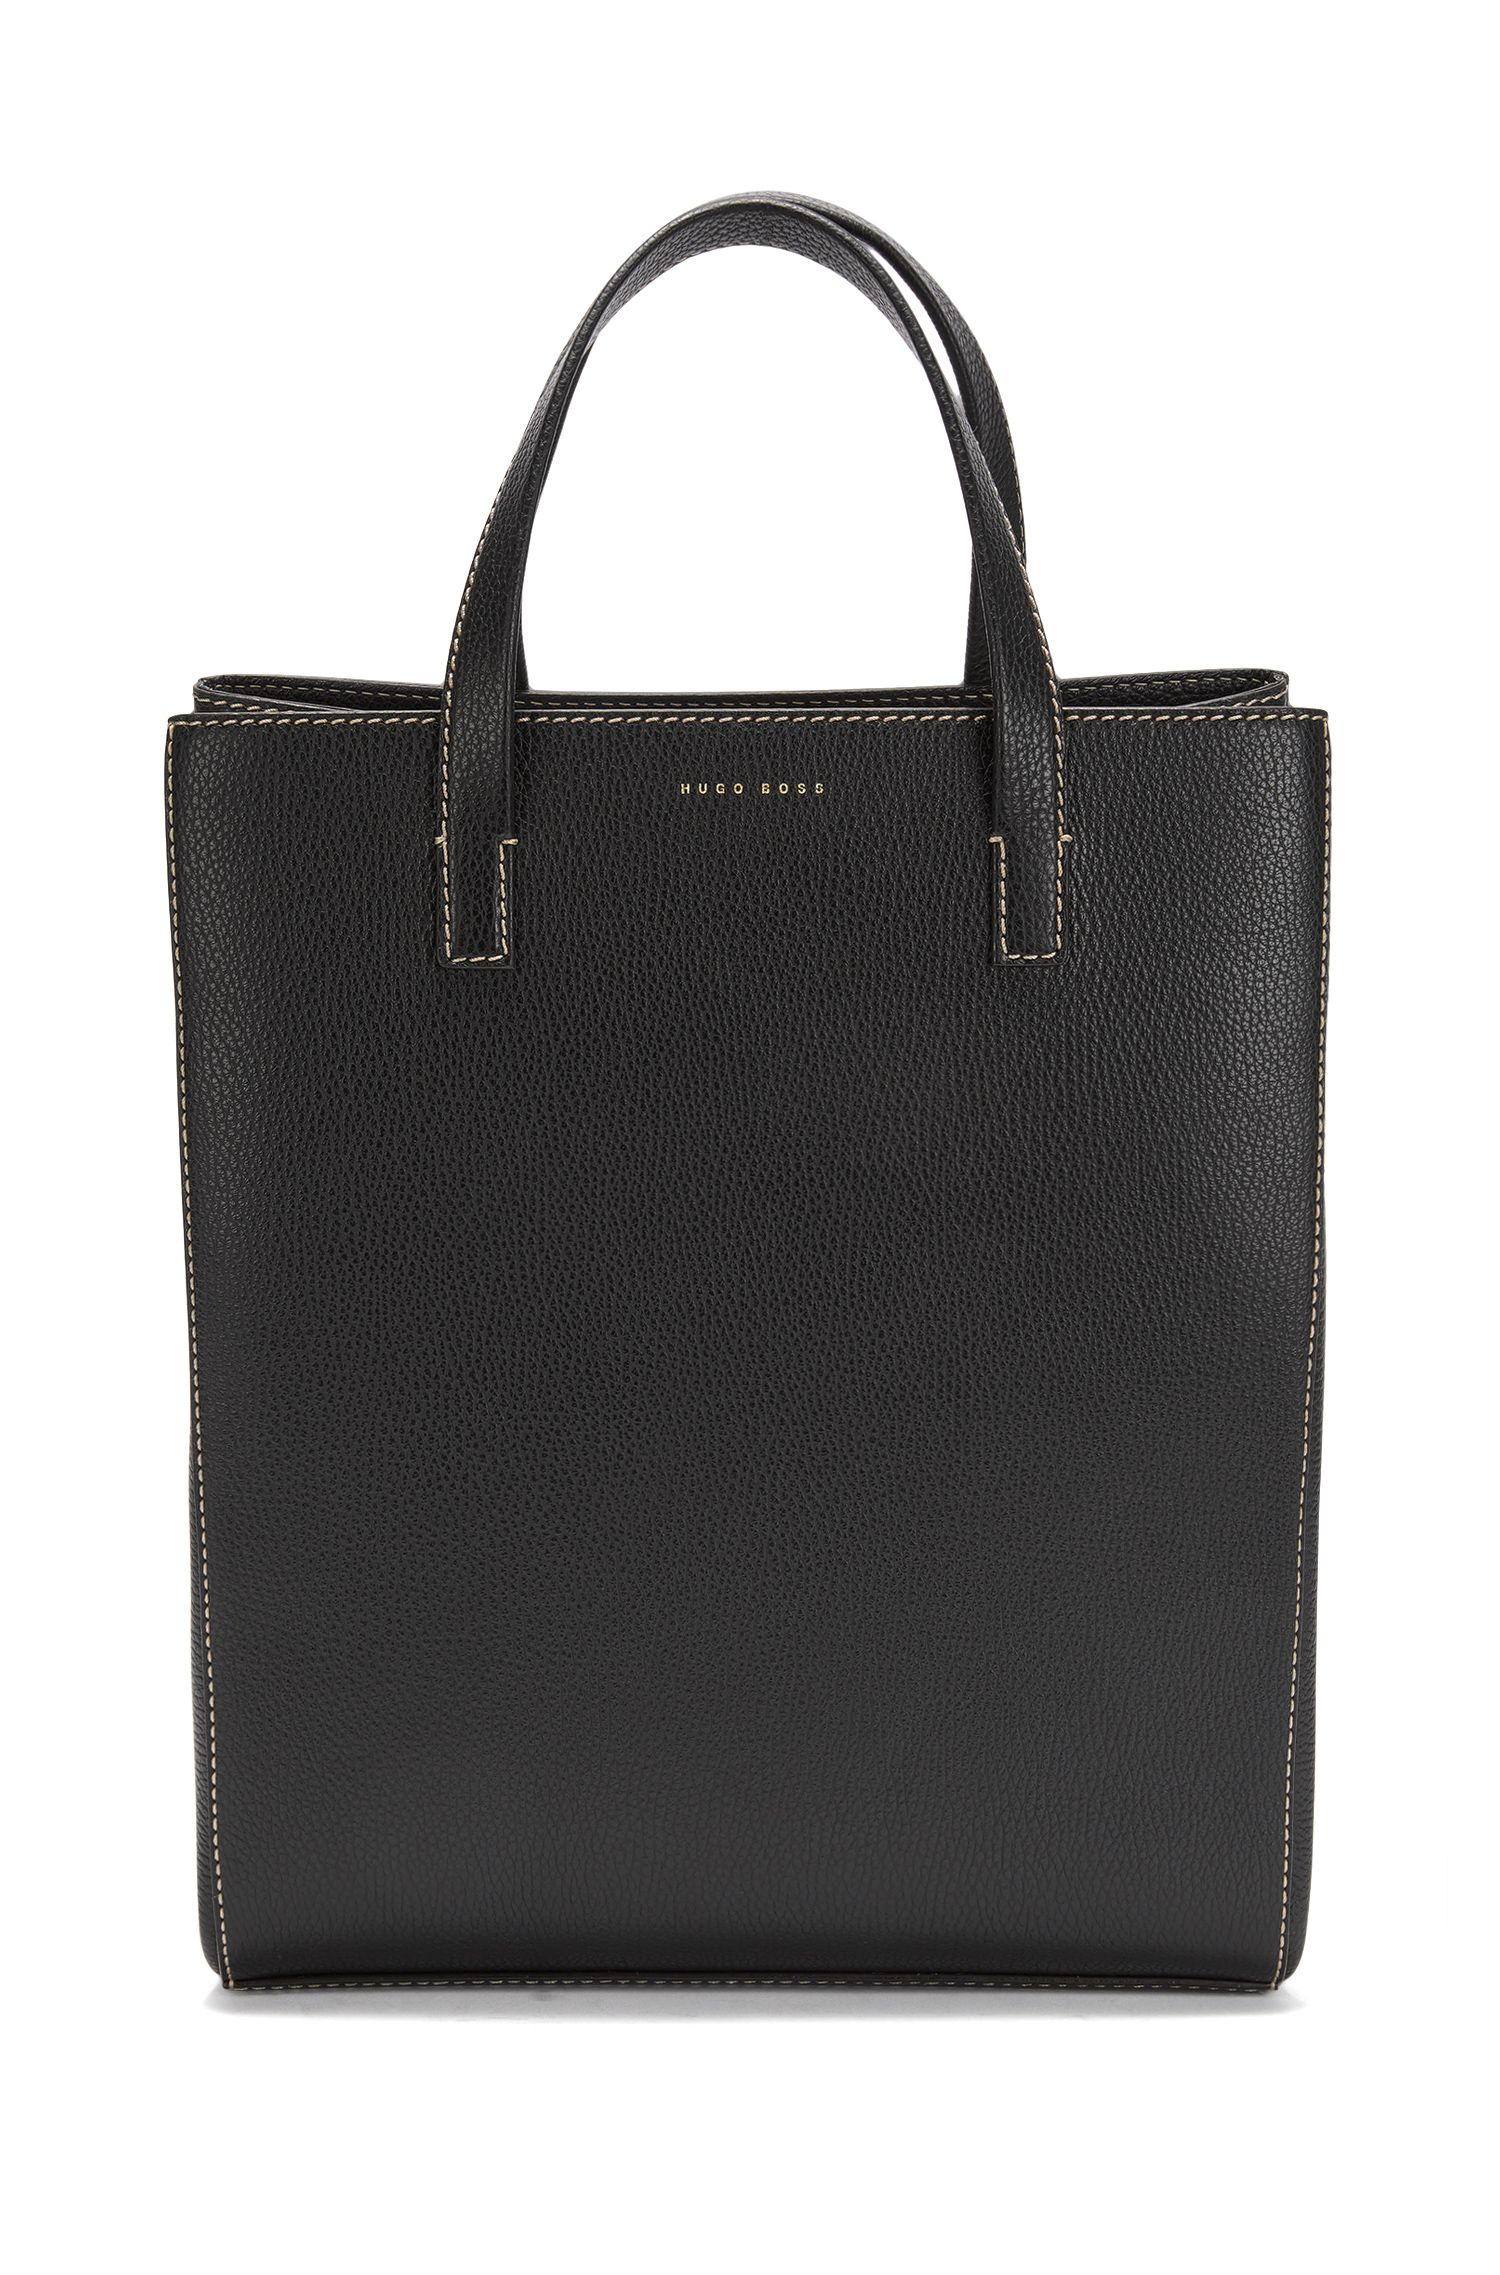 BOSS Bespoke Soft tote bag in Italian leather